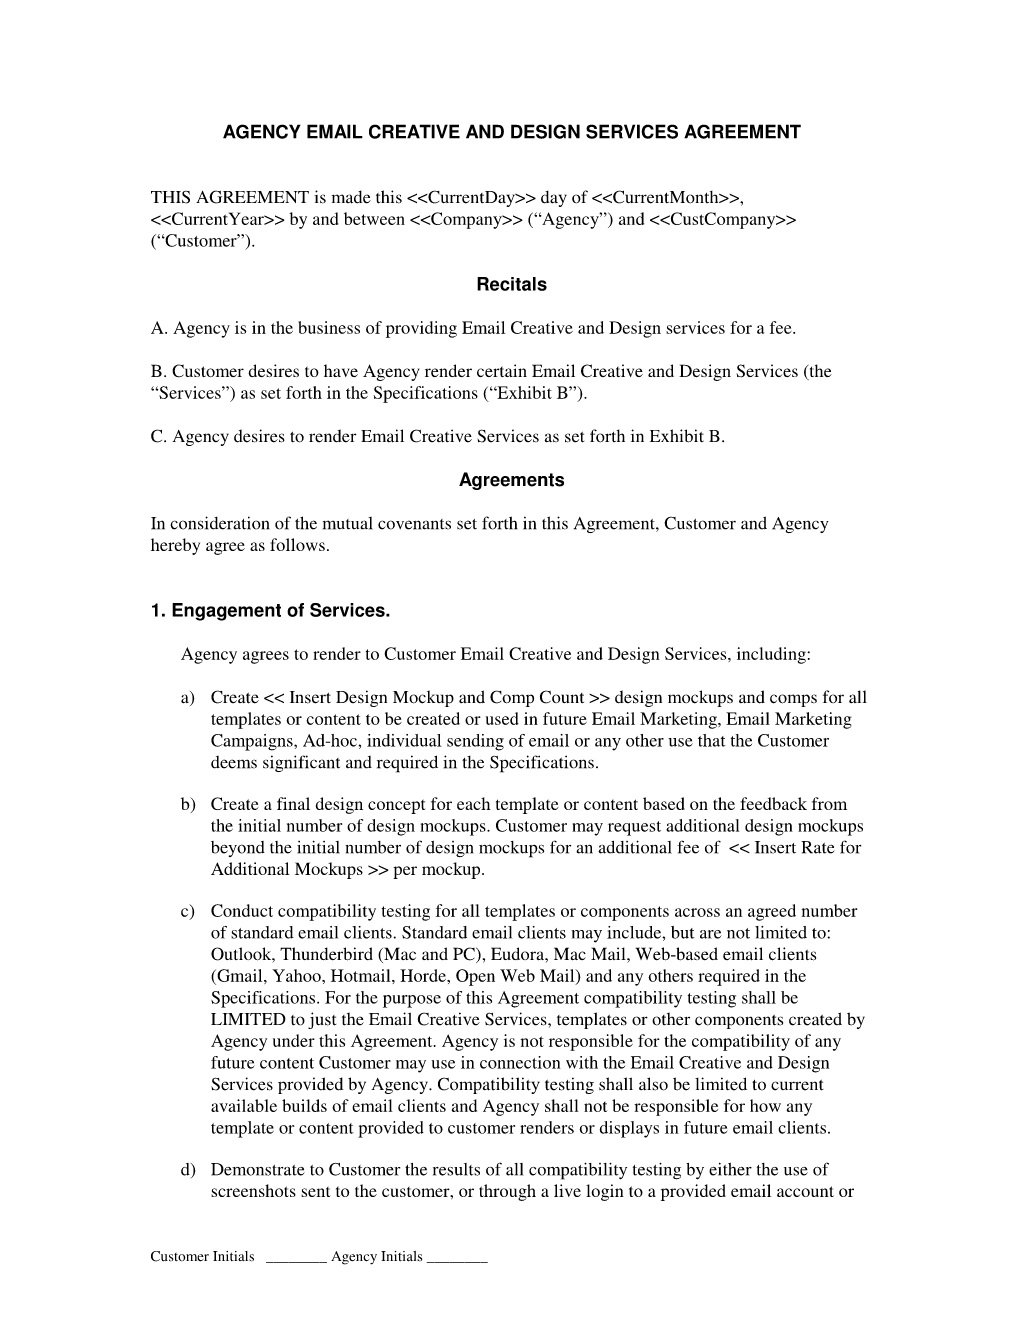 Email Marketing Creative by Agency Agreement : Advertising and ...